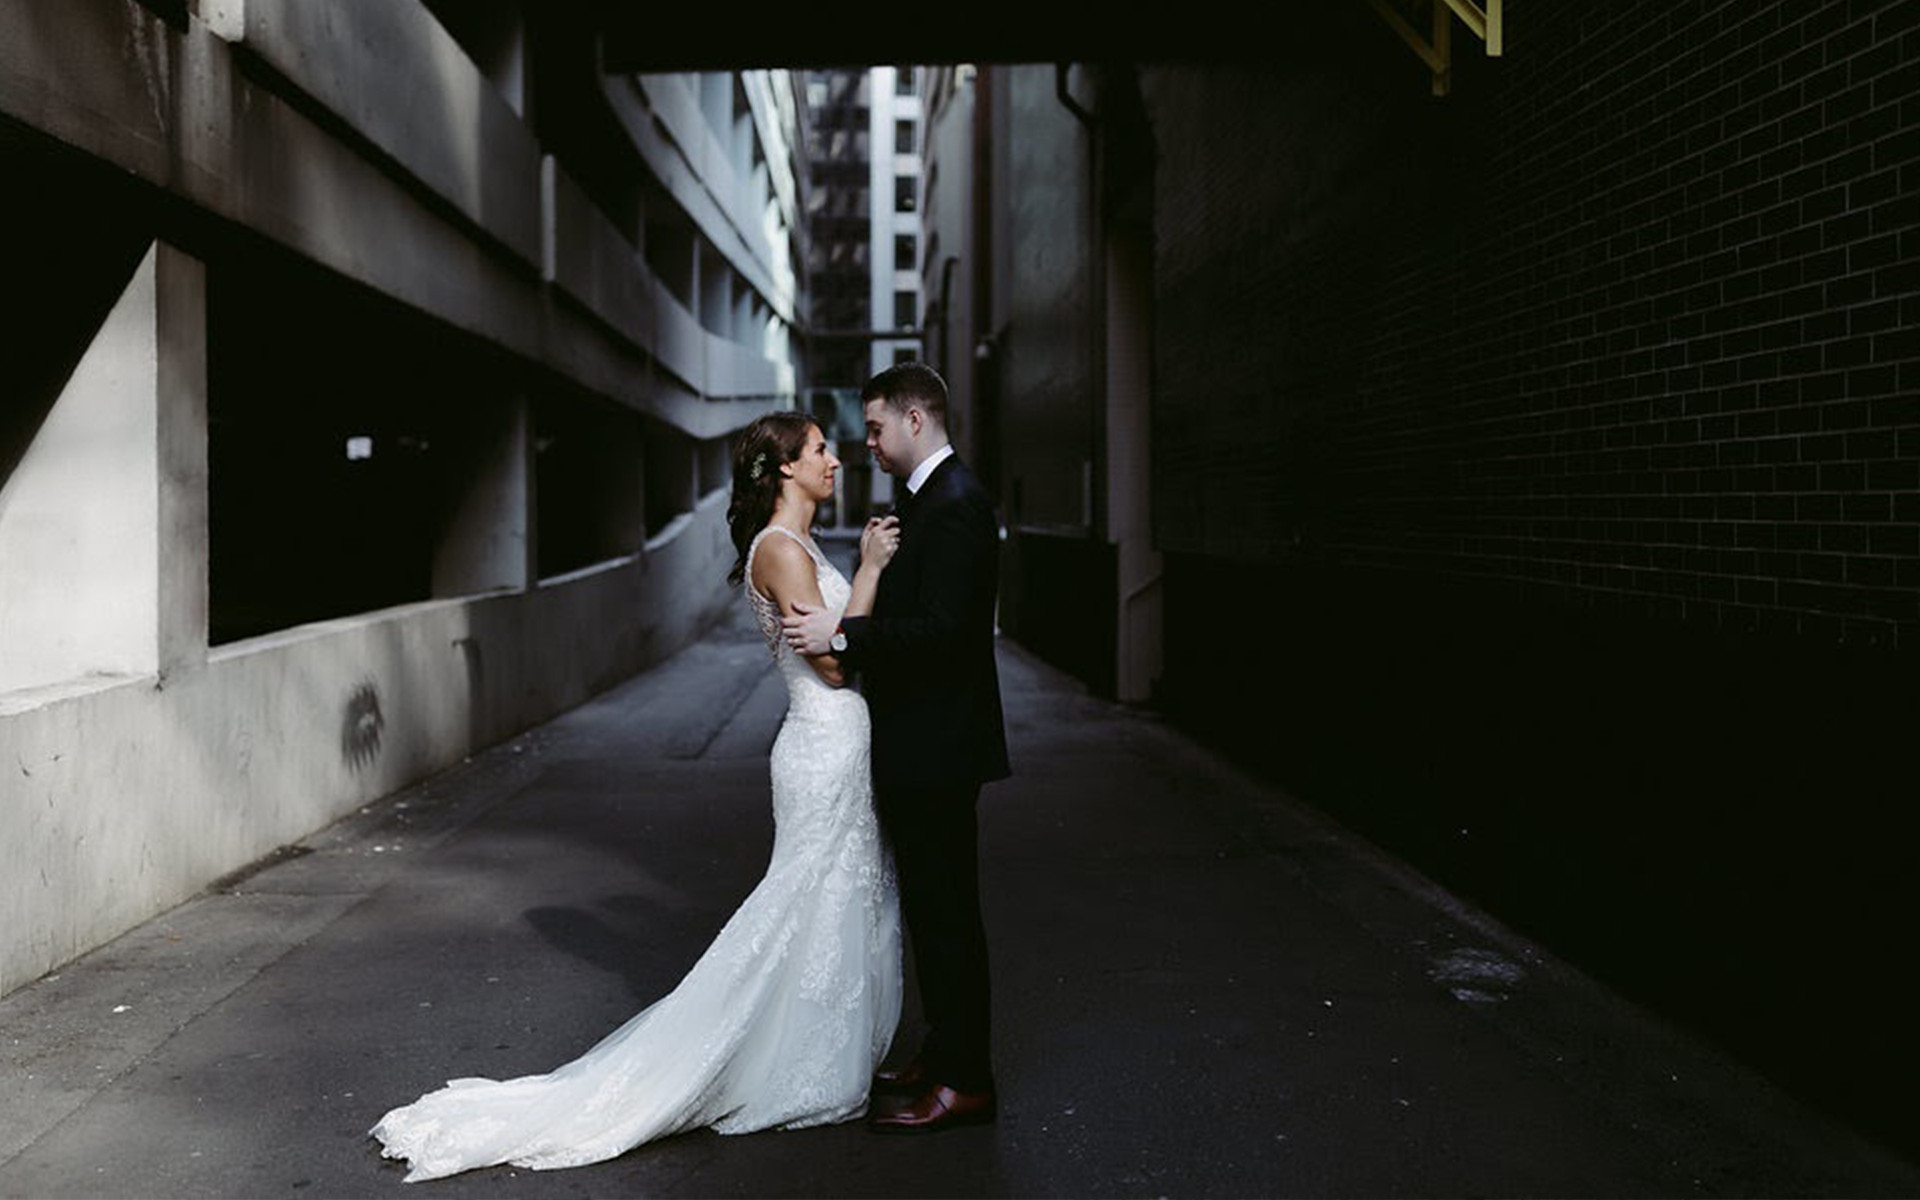 A Romantic Uptown Wedding Full of Personal Touches and Sweet Details